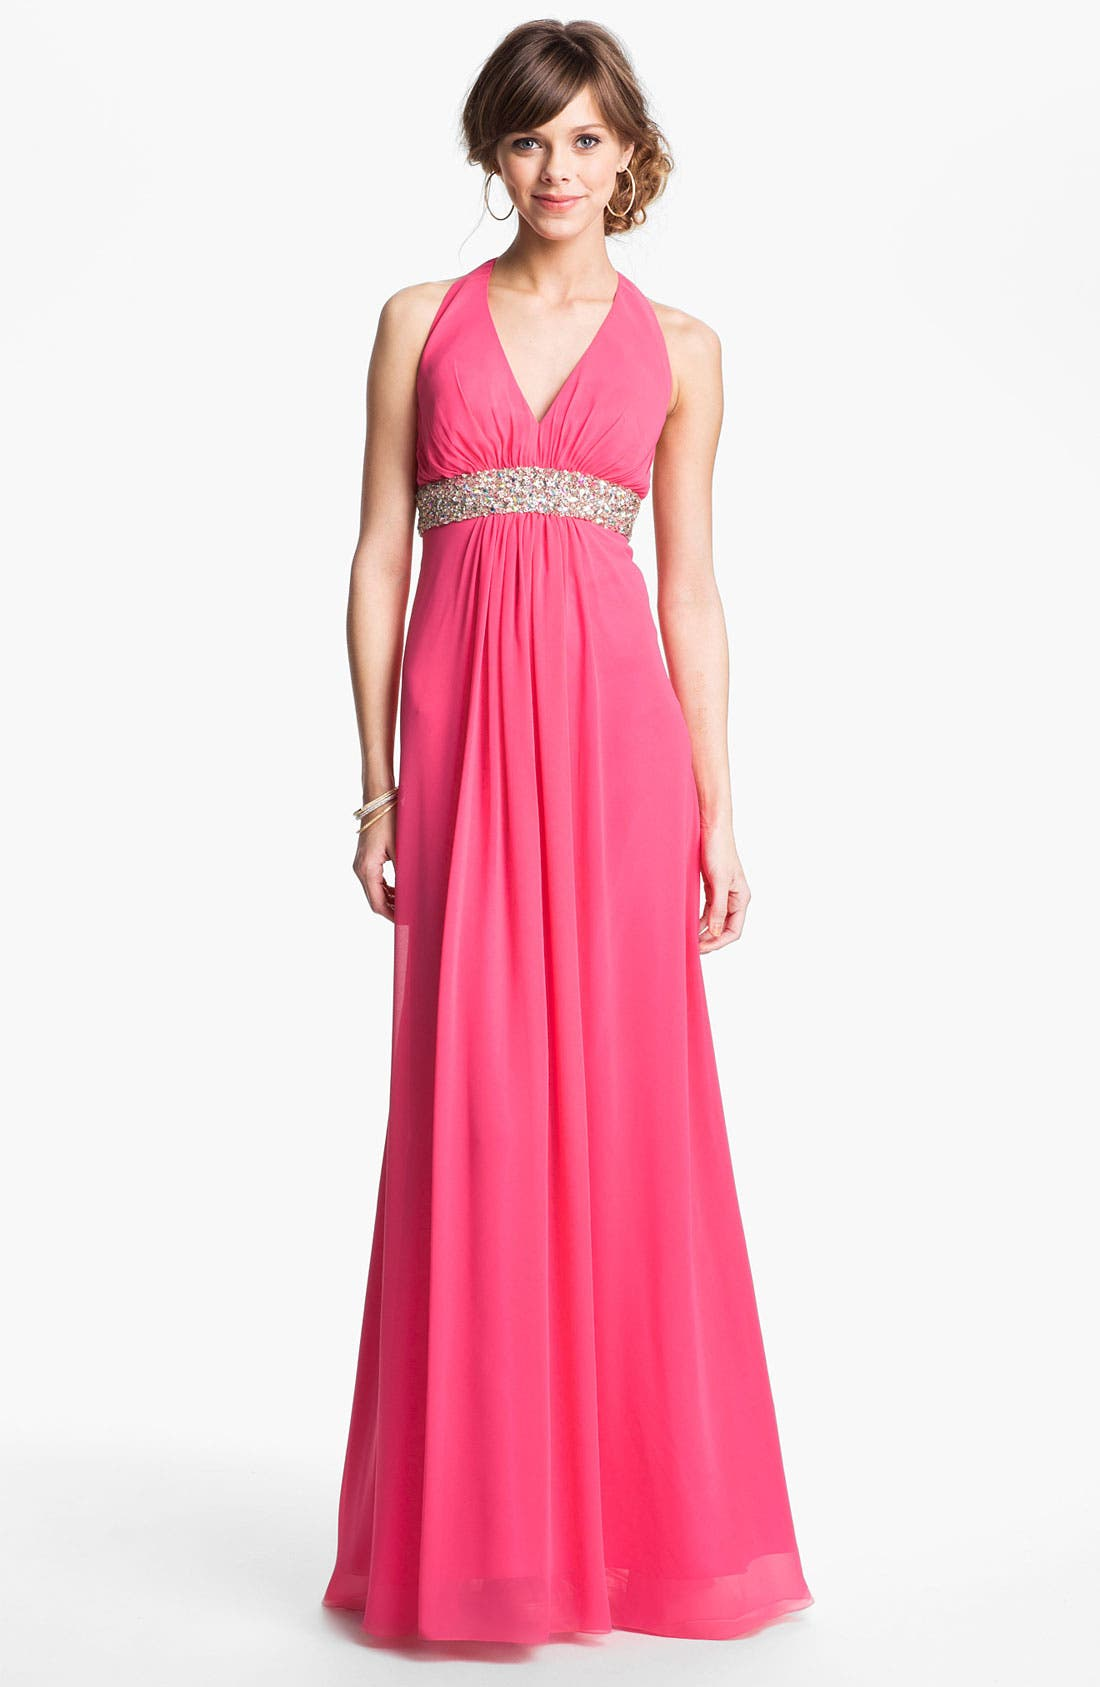 Main Image - Faviana Embellished Chiffon Halter Gown (Online Exclusive)